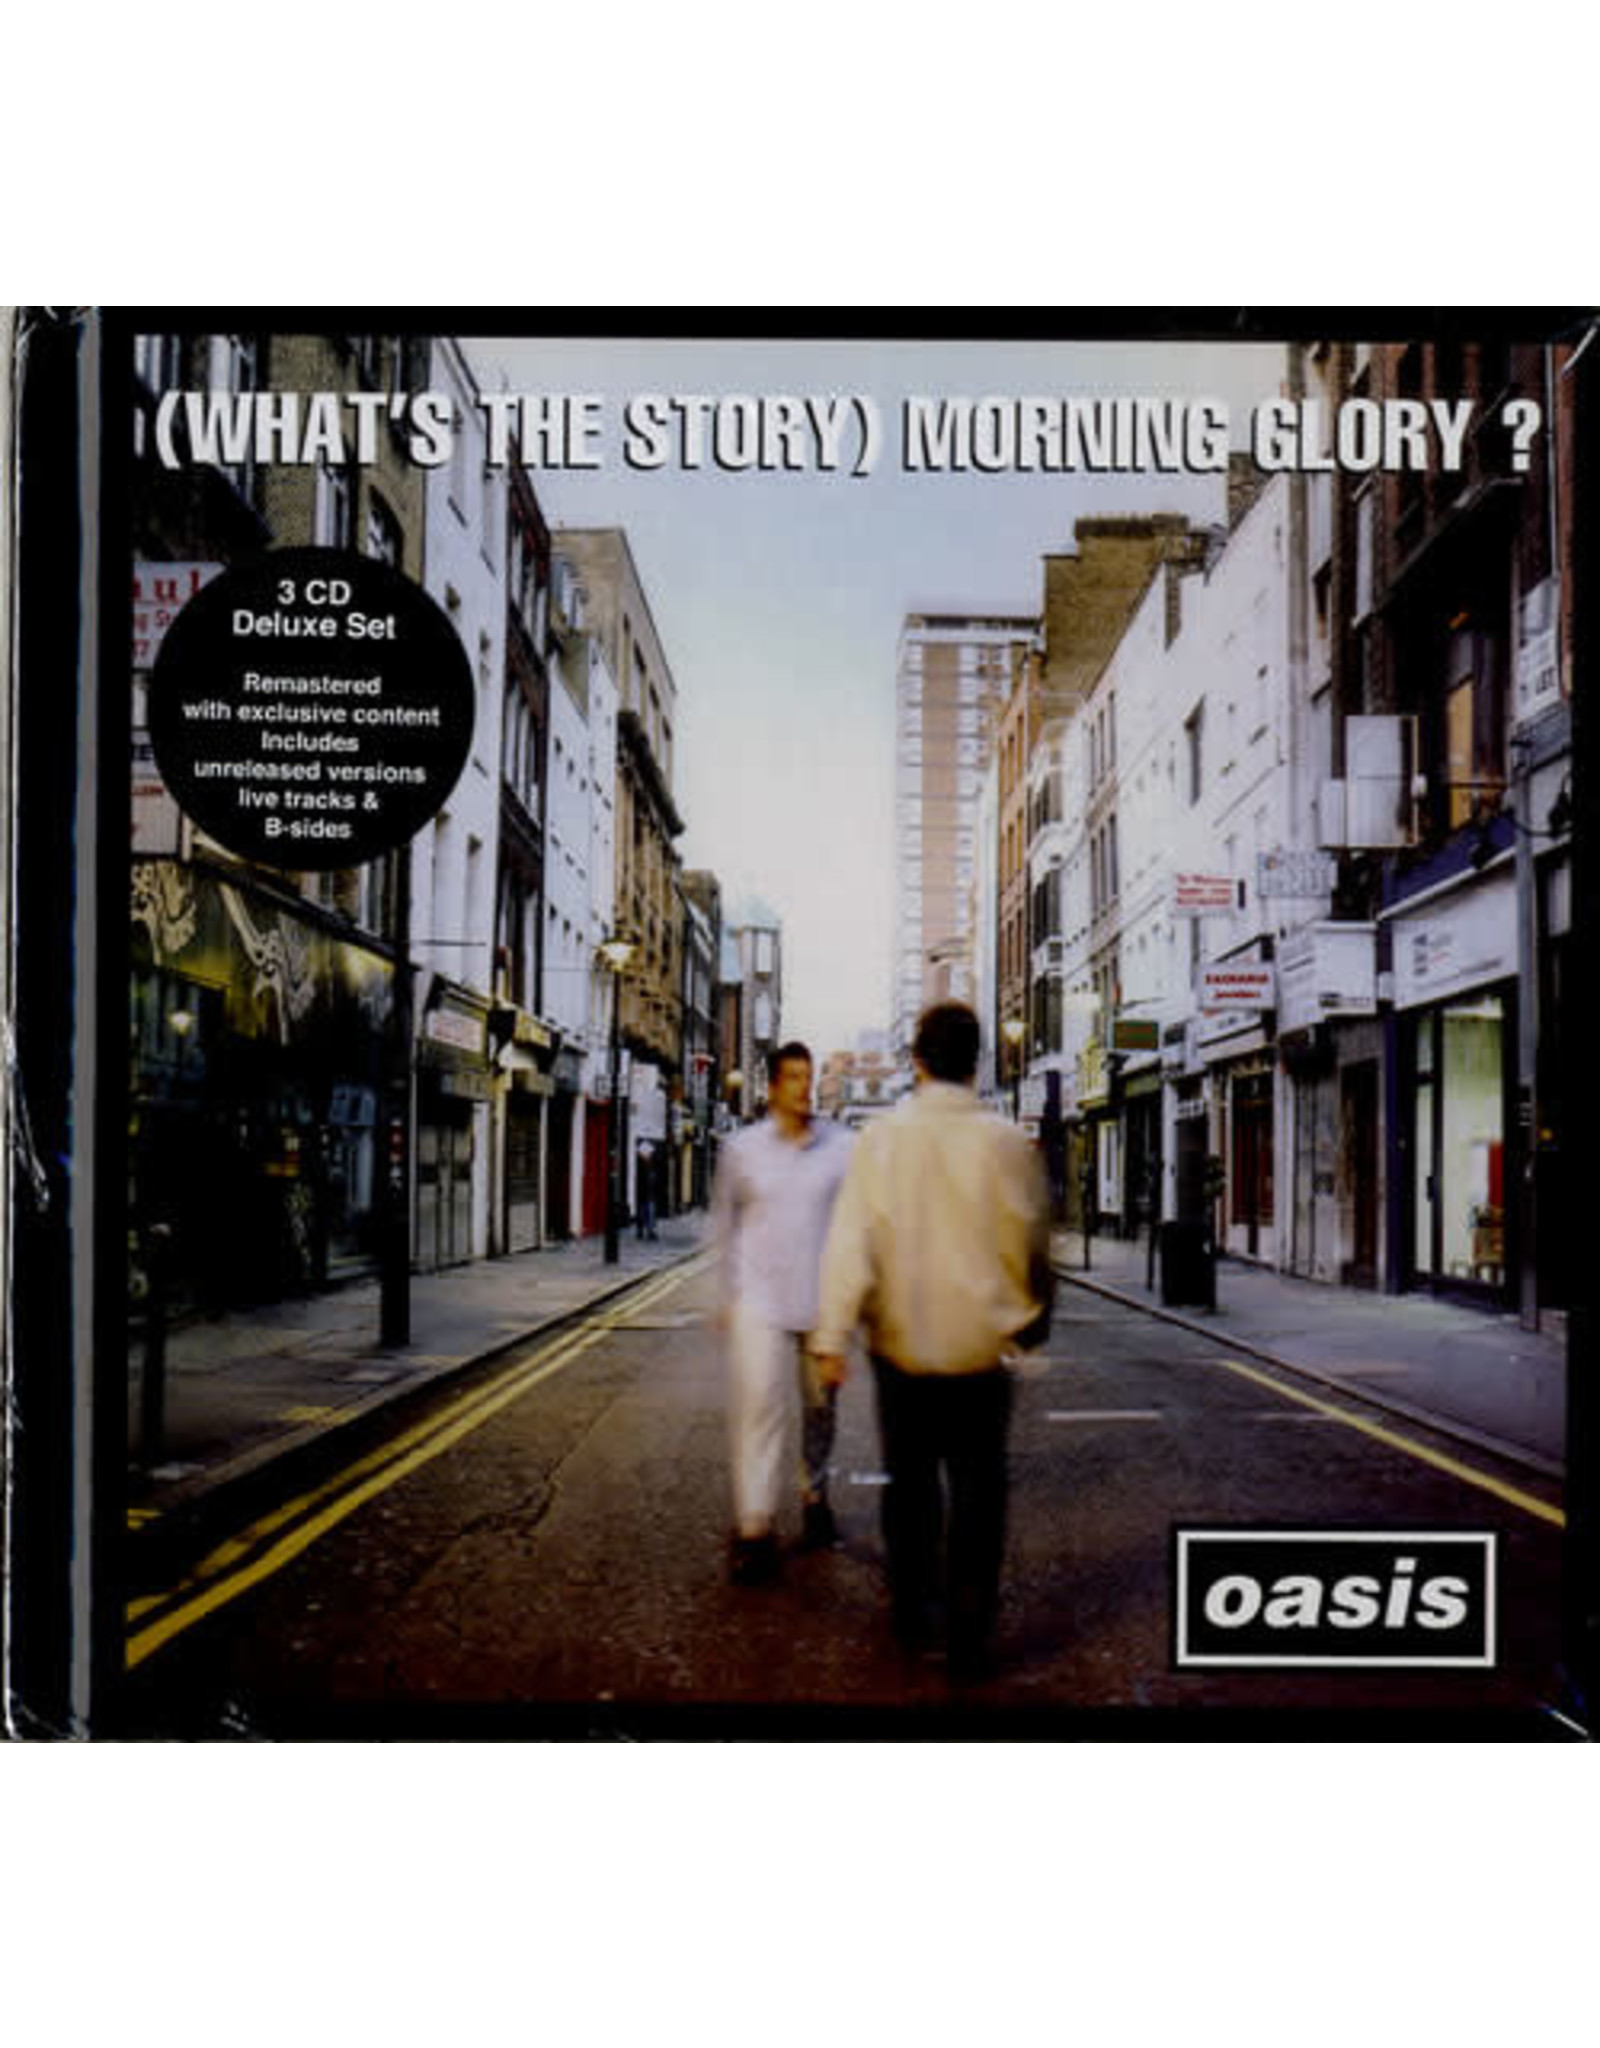 Oasis - (What's the Story) Morning Glory 3CD Dlx